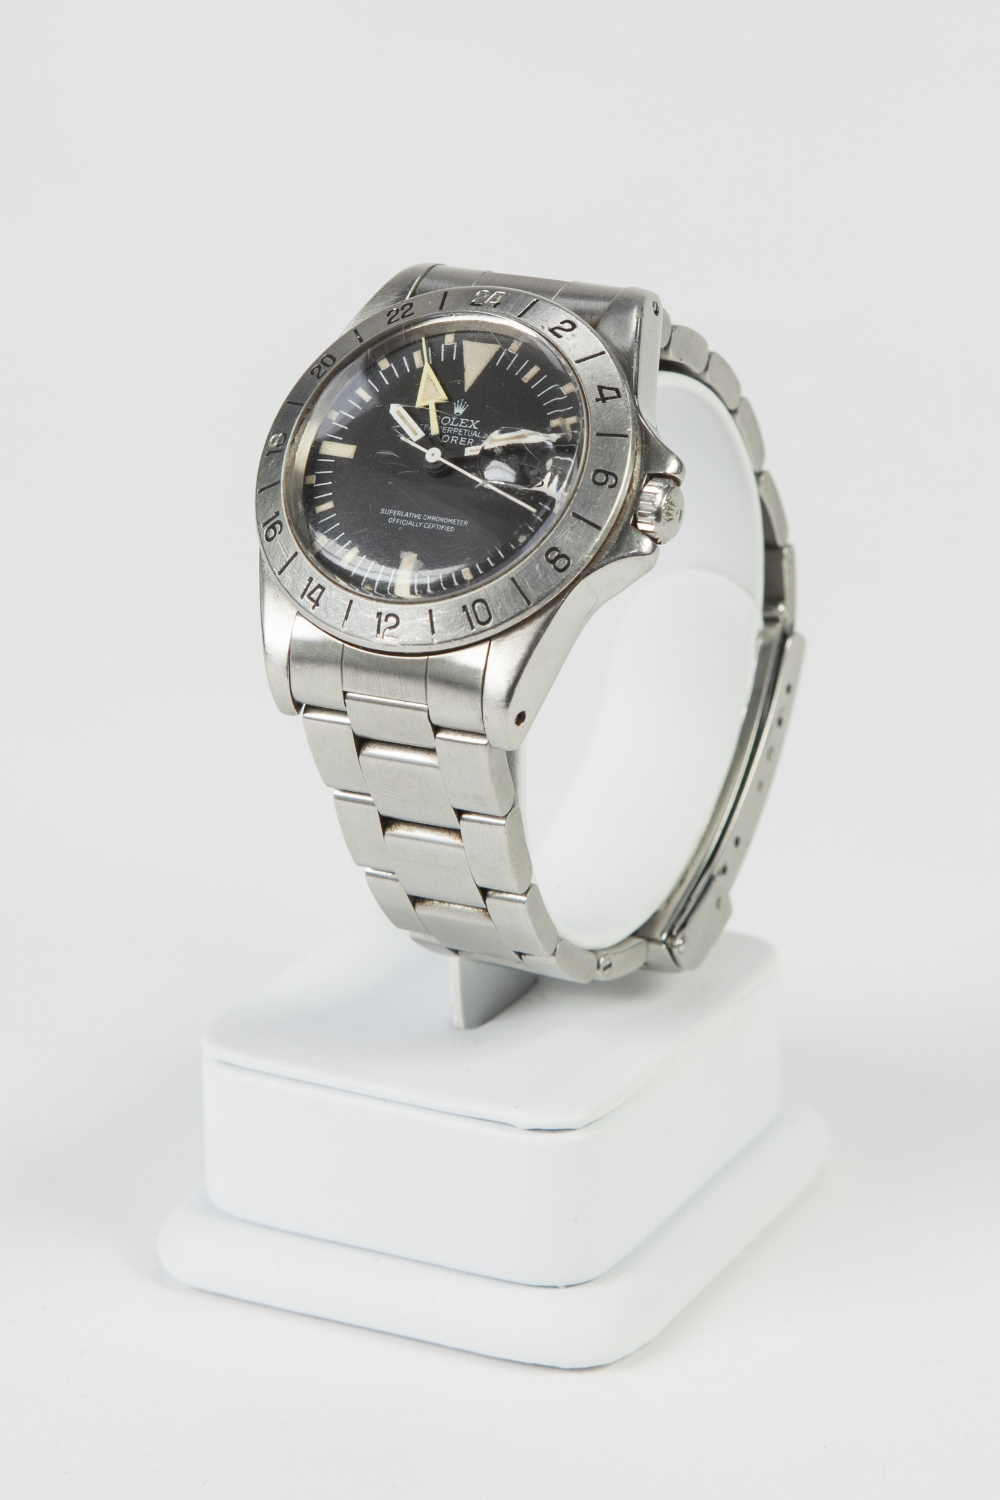 Lot 15 - GENT'S RARE VINTAGE STAINLESS STEEL ROLEX EXPLORER II OYSTER PERPETUAL 'OFFICIAL CERTIFIED'